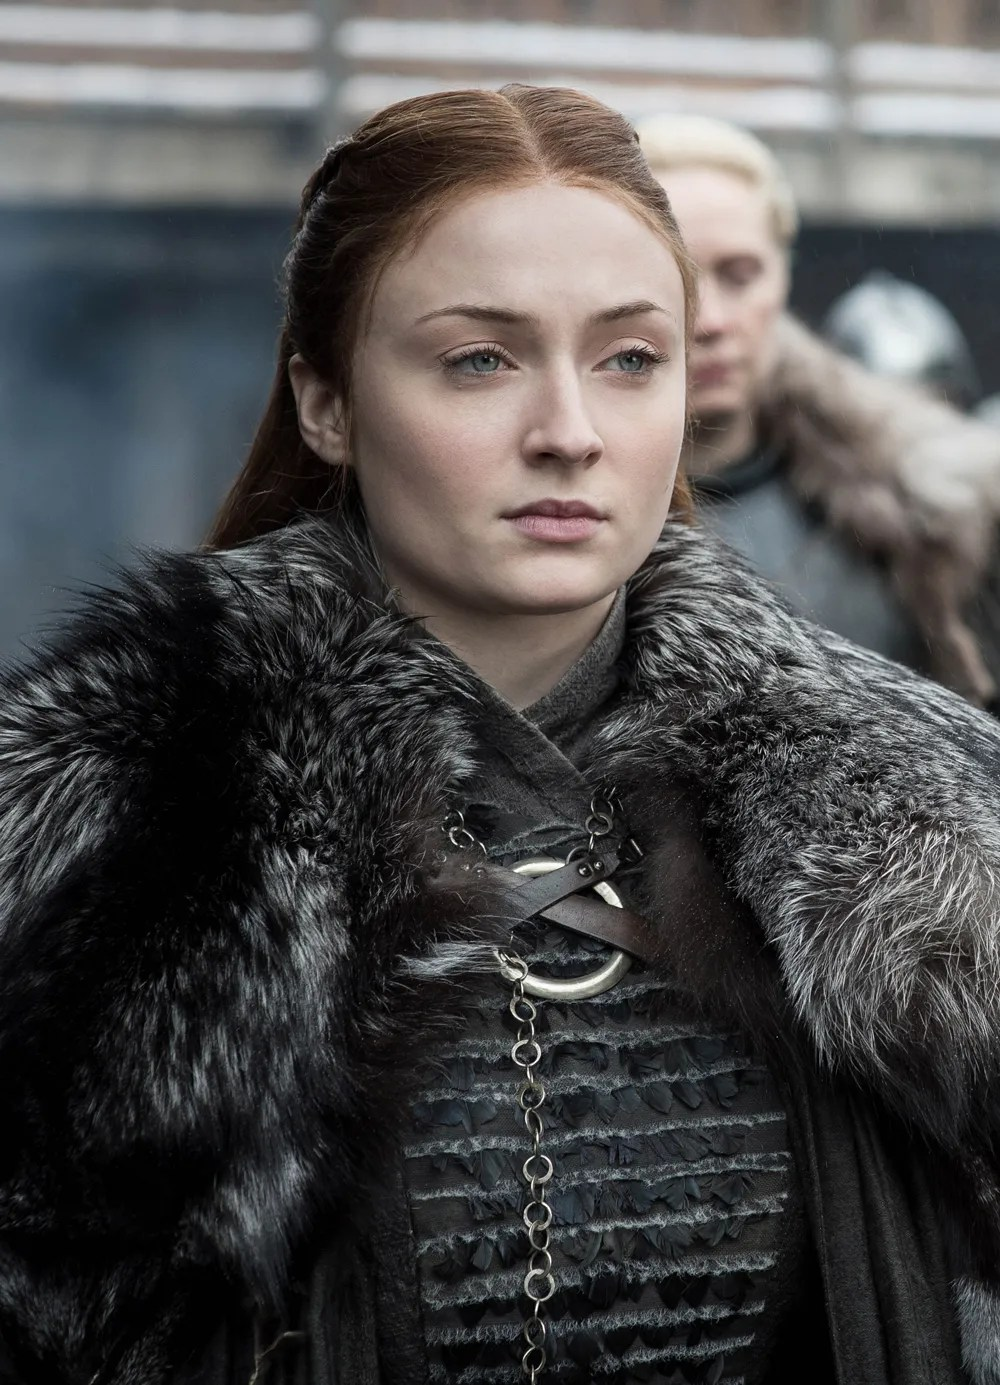 Sansa Stark on the final season of Game of Thrones